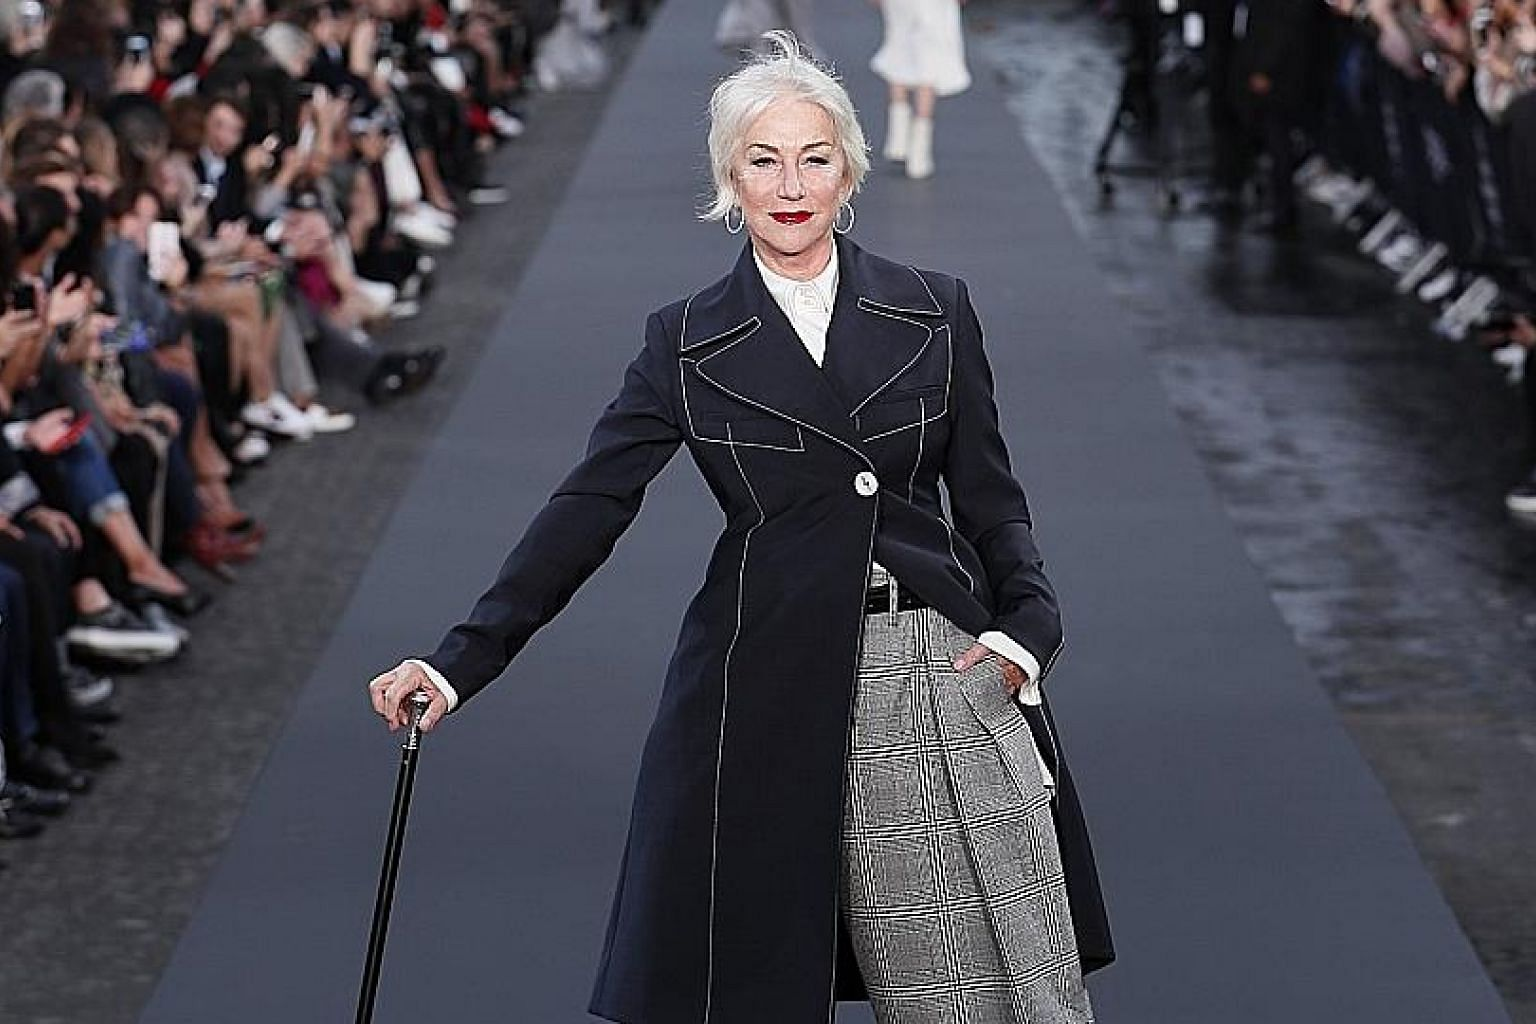 English actress Helen Mirren (above), 72, and American actress Jane Fonda (left), 79, took to the runway at the L'Oreal Fashion Show earlier this month during Paris Fashion Week.